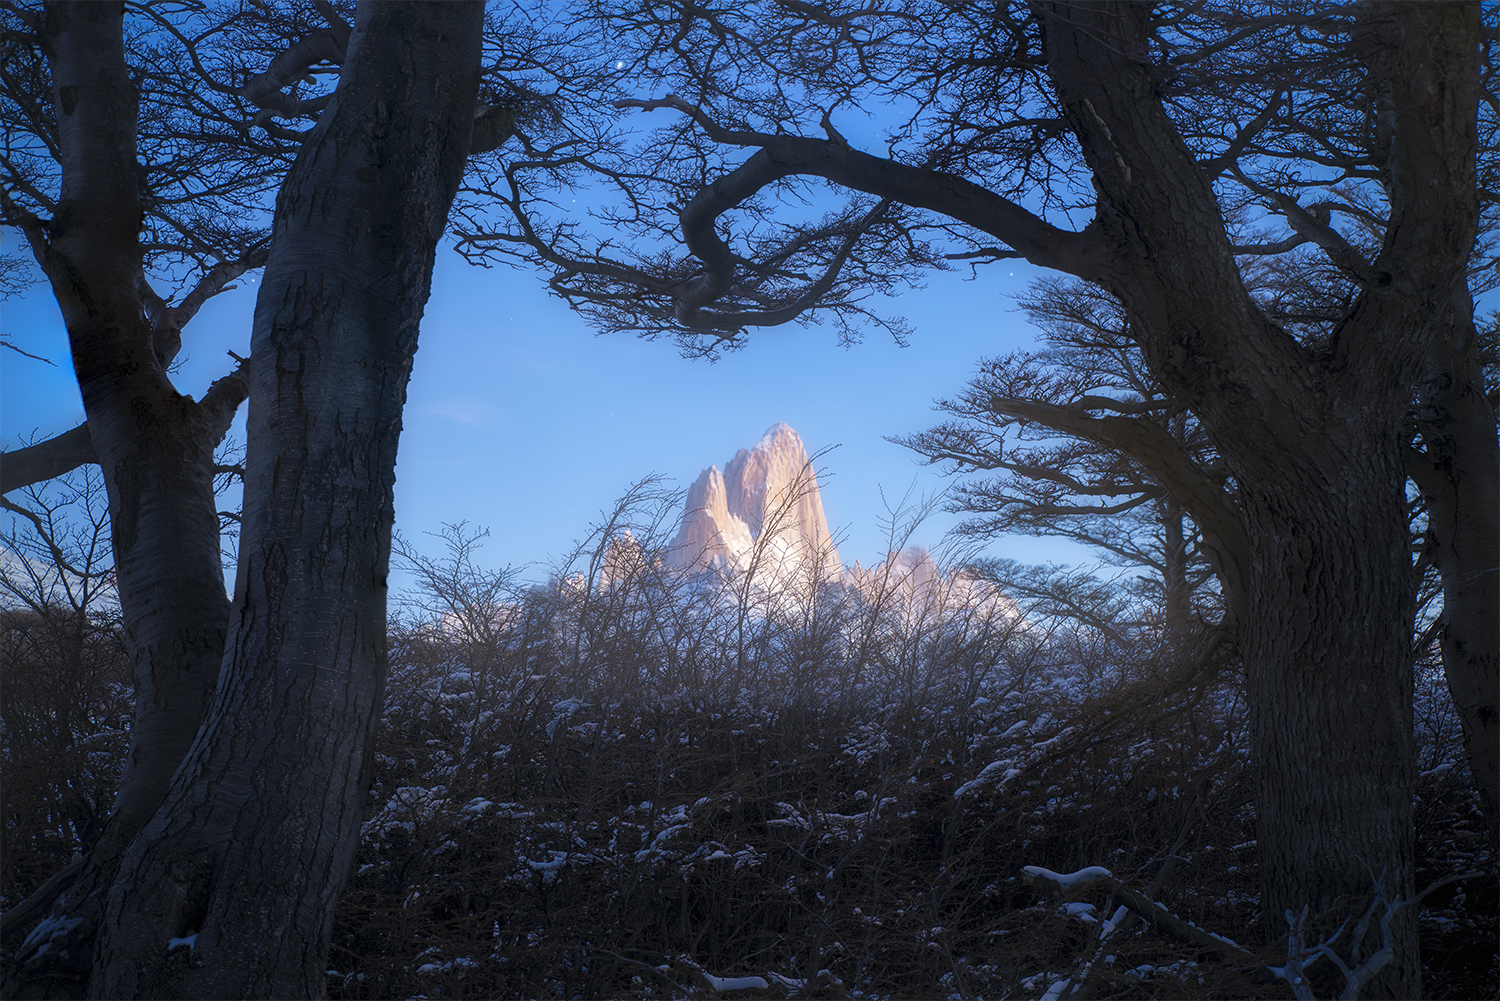 Patagonia, Fitzroy in winter